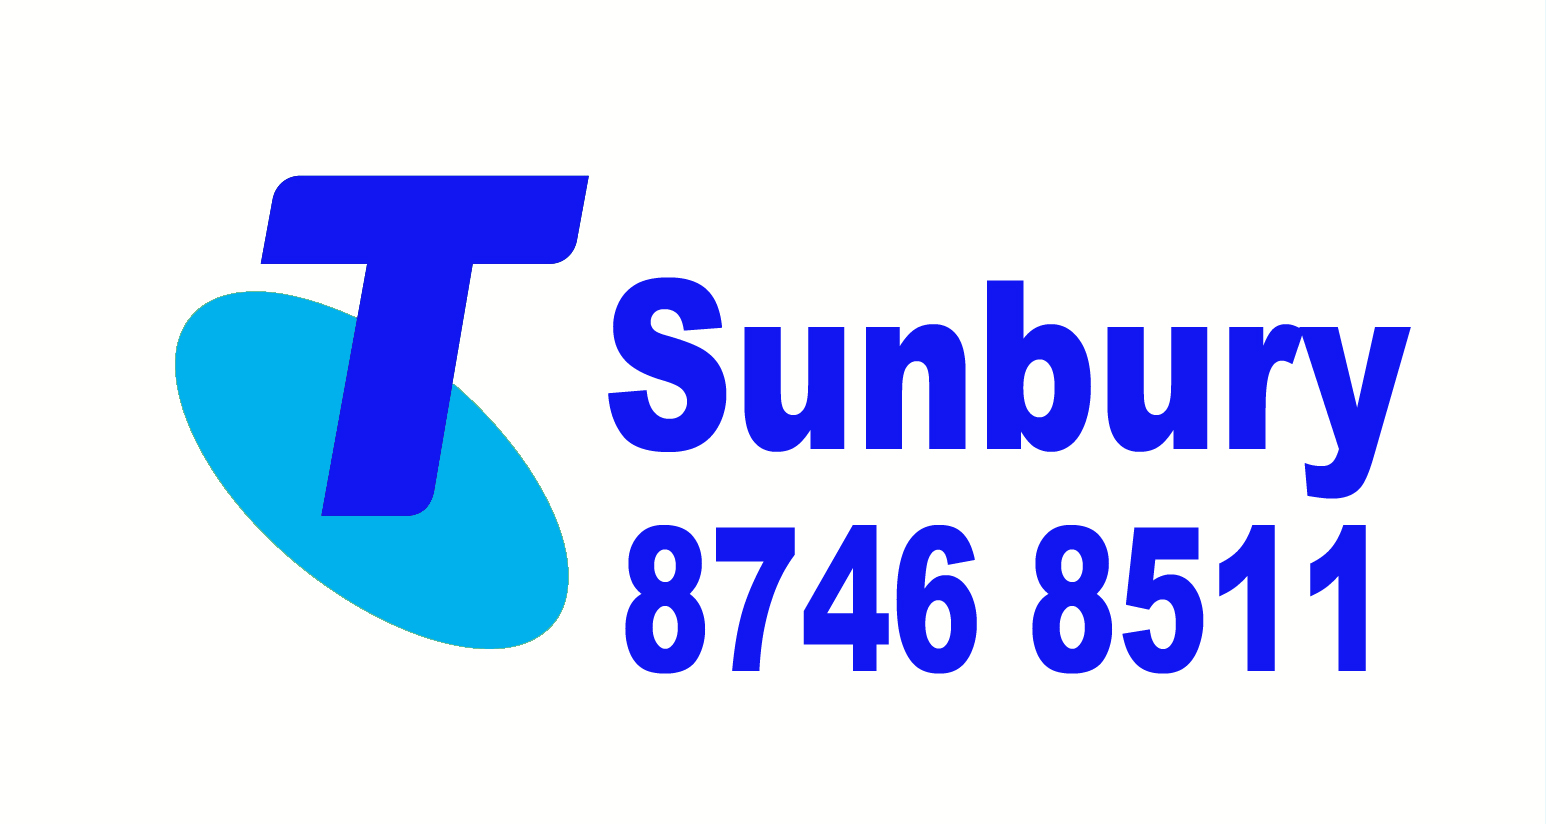 Telstra Sunbury